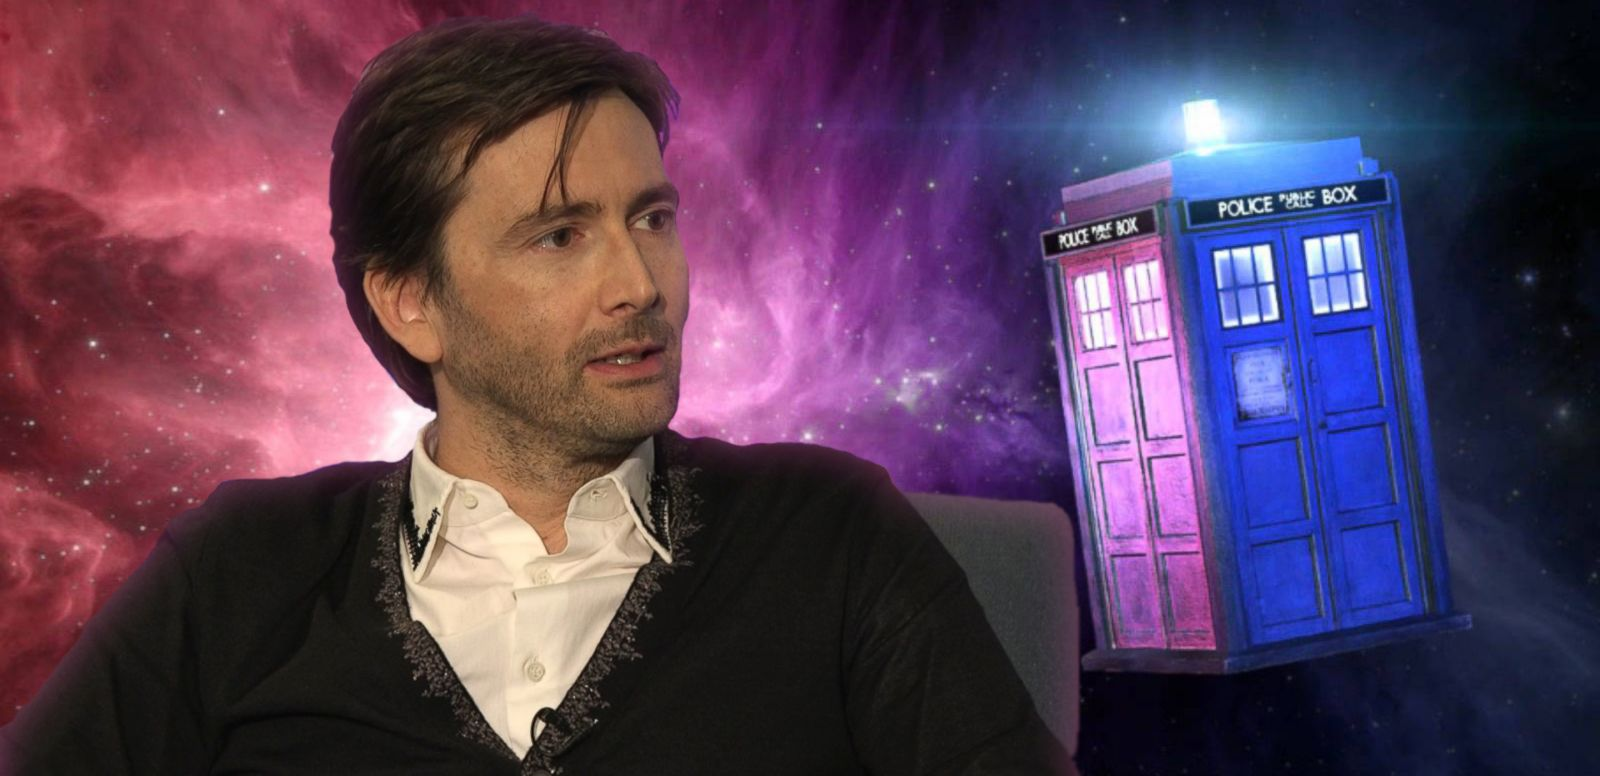 VIDEO: Where Would David Tennant Go if He Had a Real Tardis?